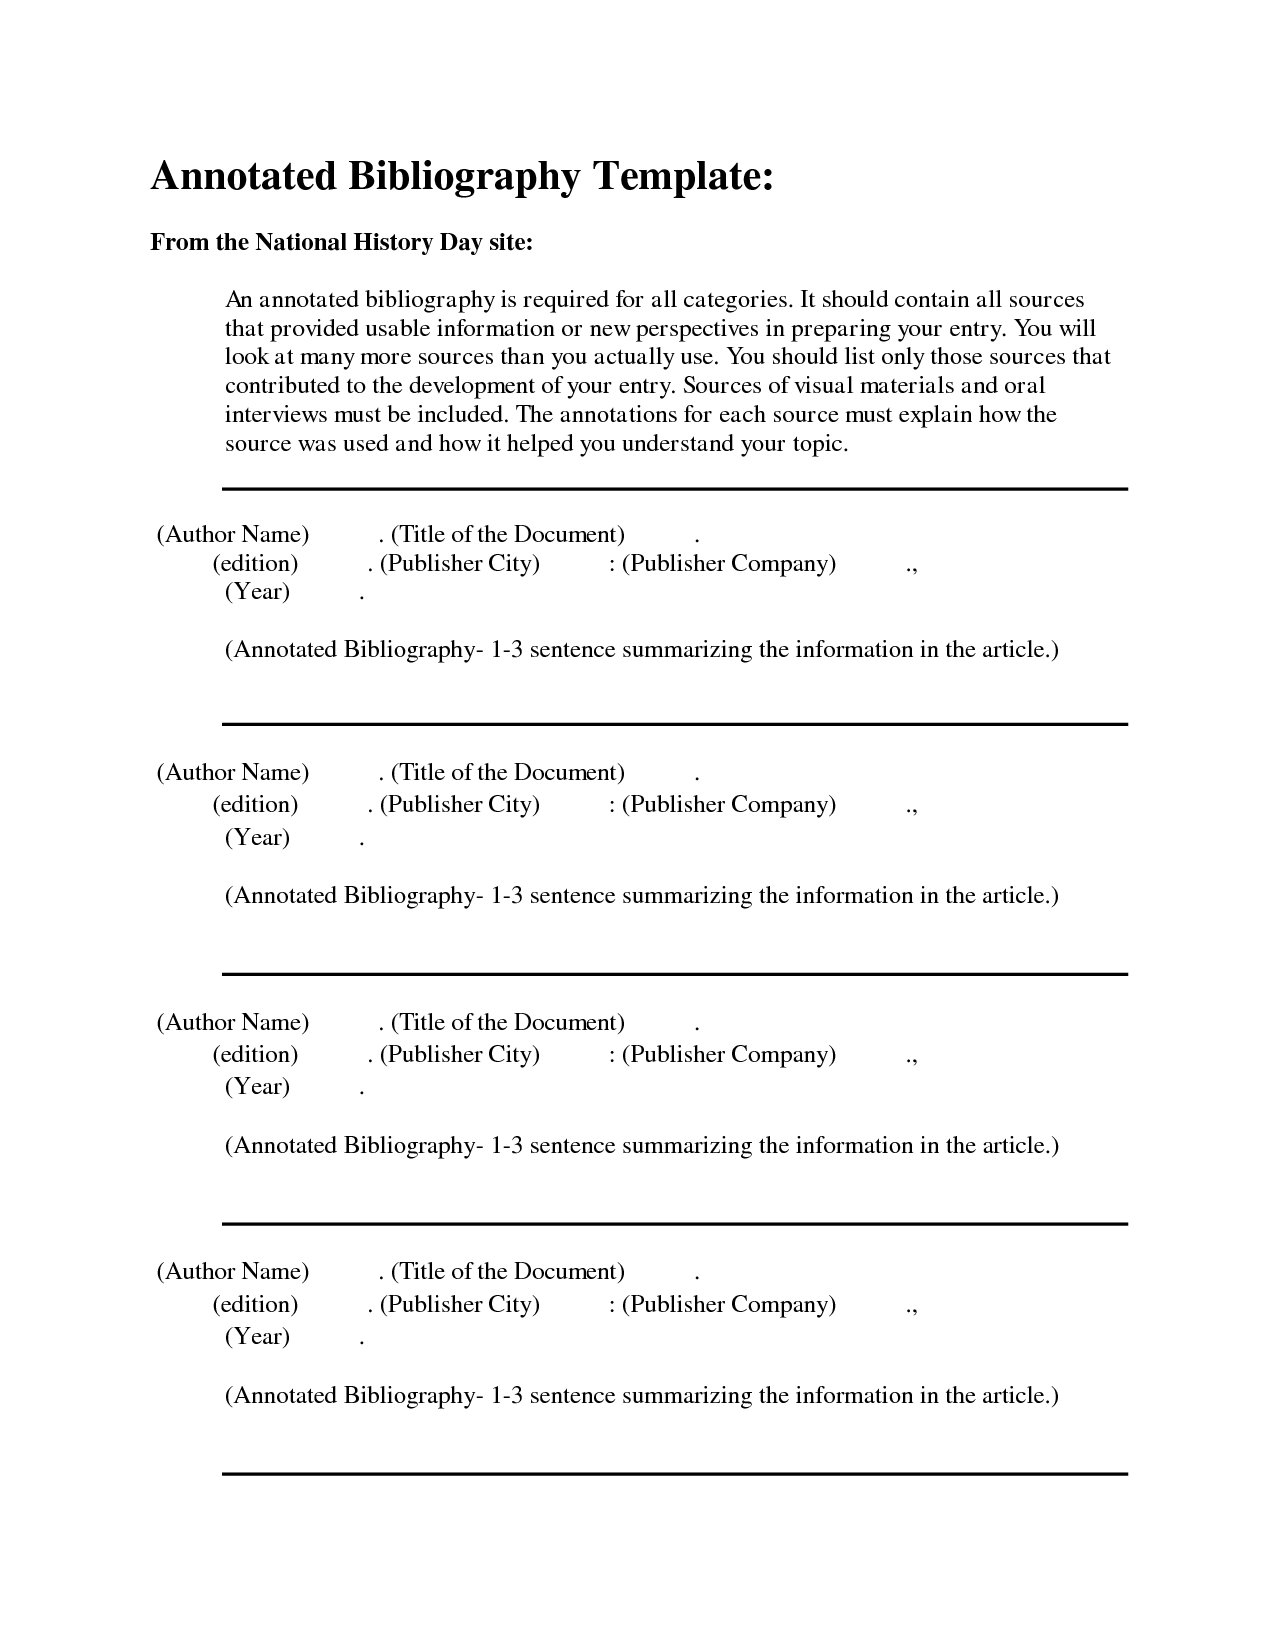 Image Annotated Bibliography Annotated Bibliography APA